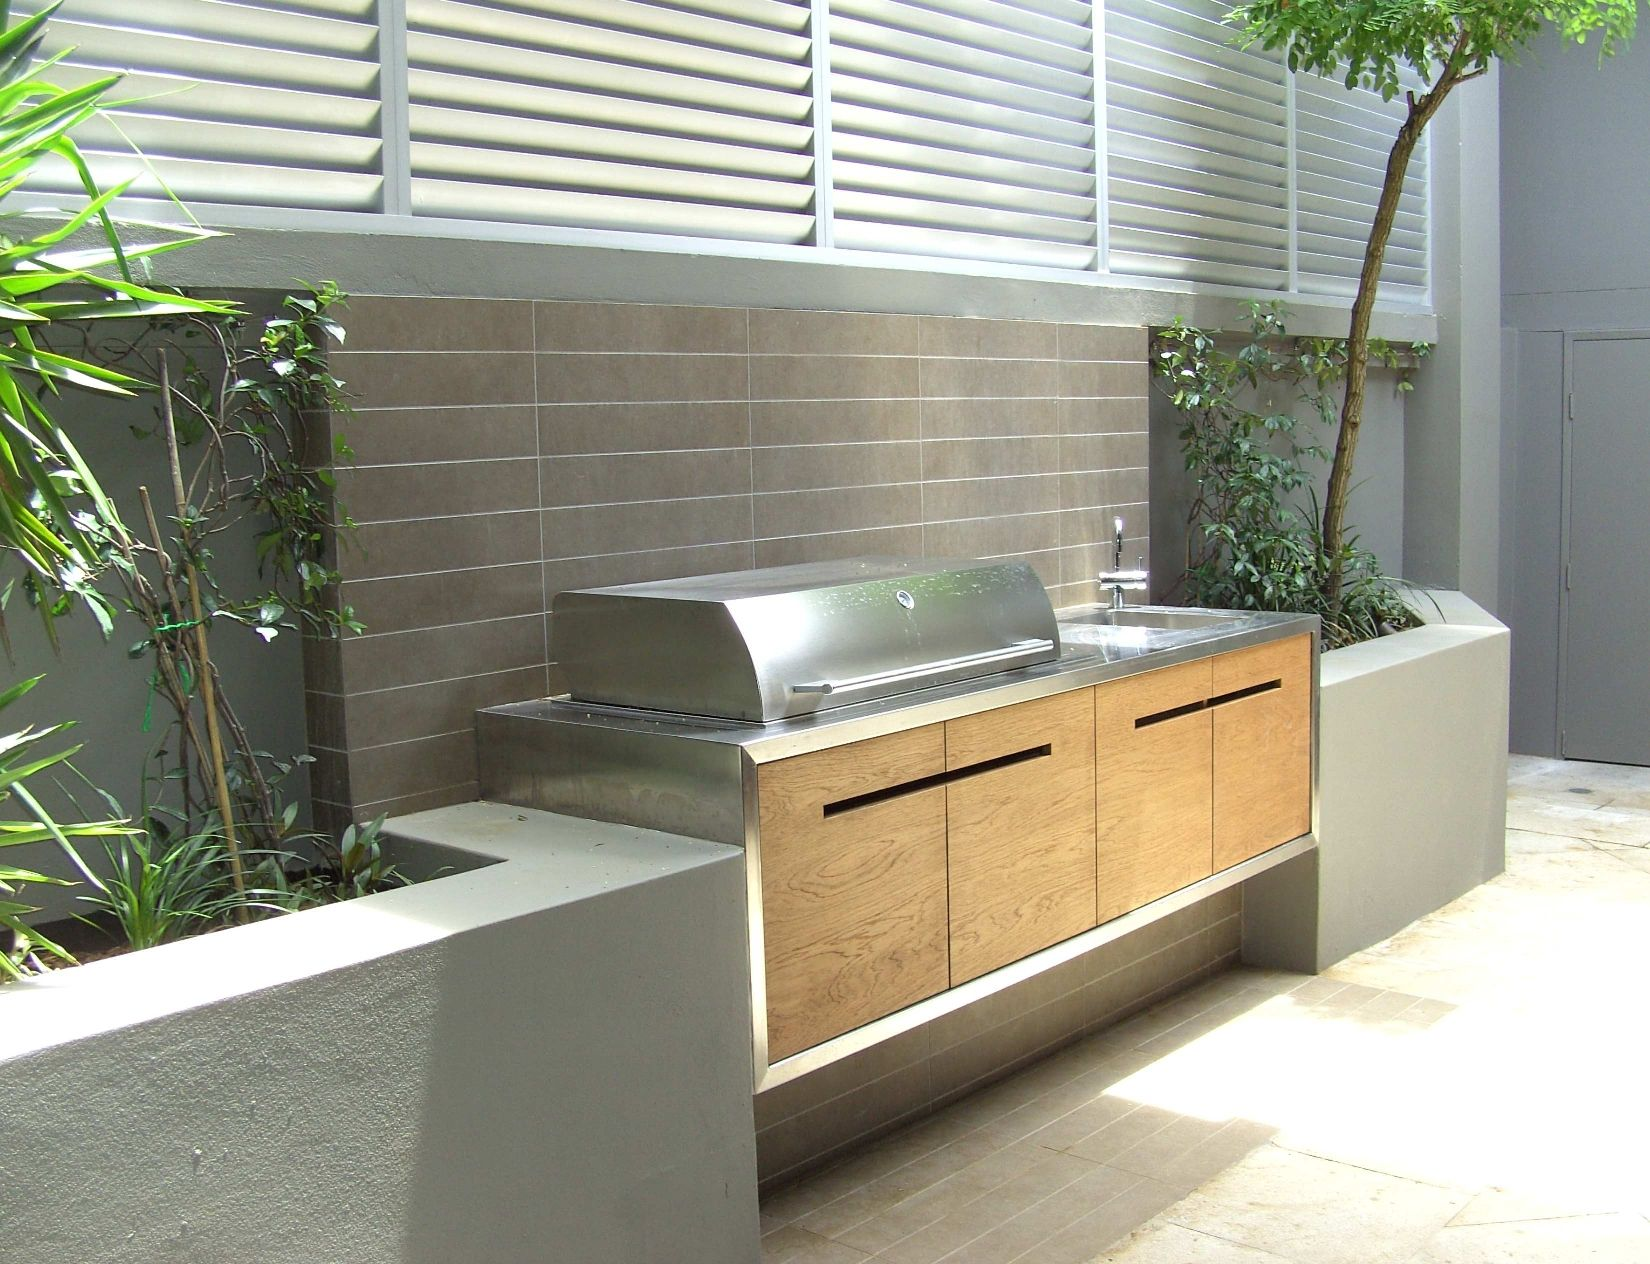 Stainless Steel Benchtops & Benches